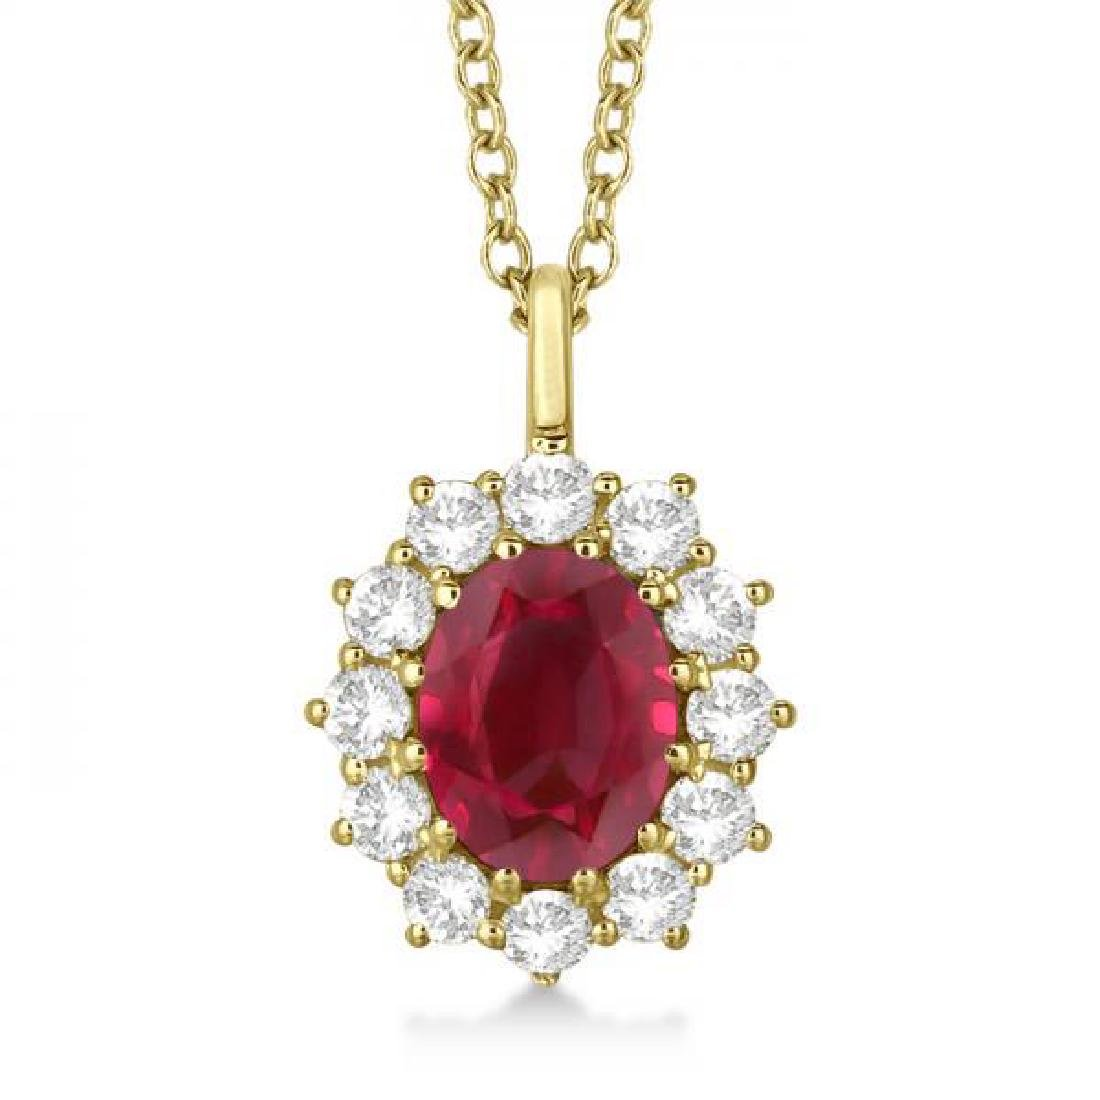 Oval Ruby and Diamond Pendant Necklace 14k Yellow Gold